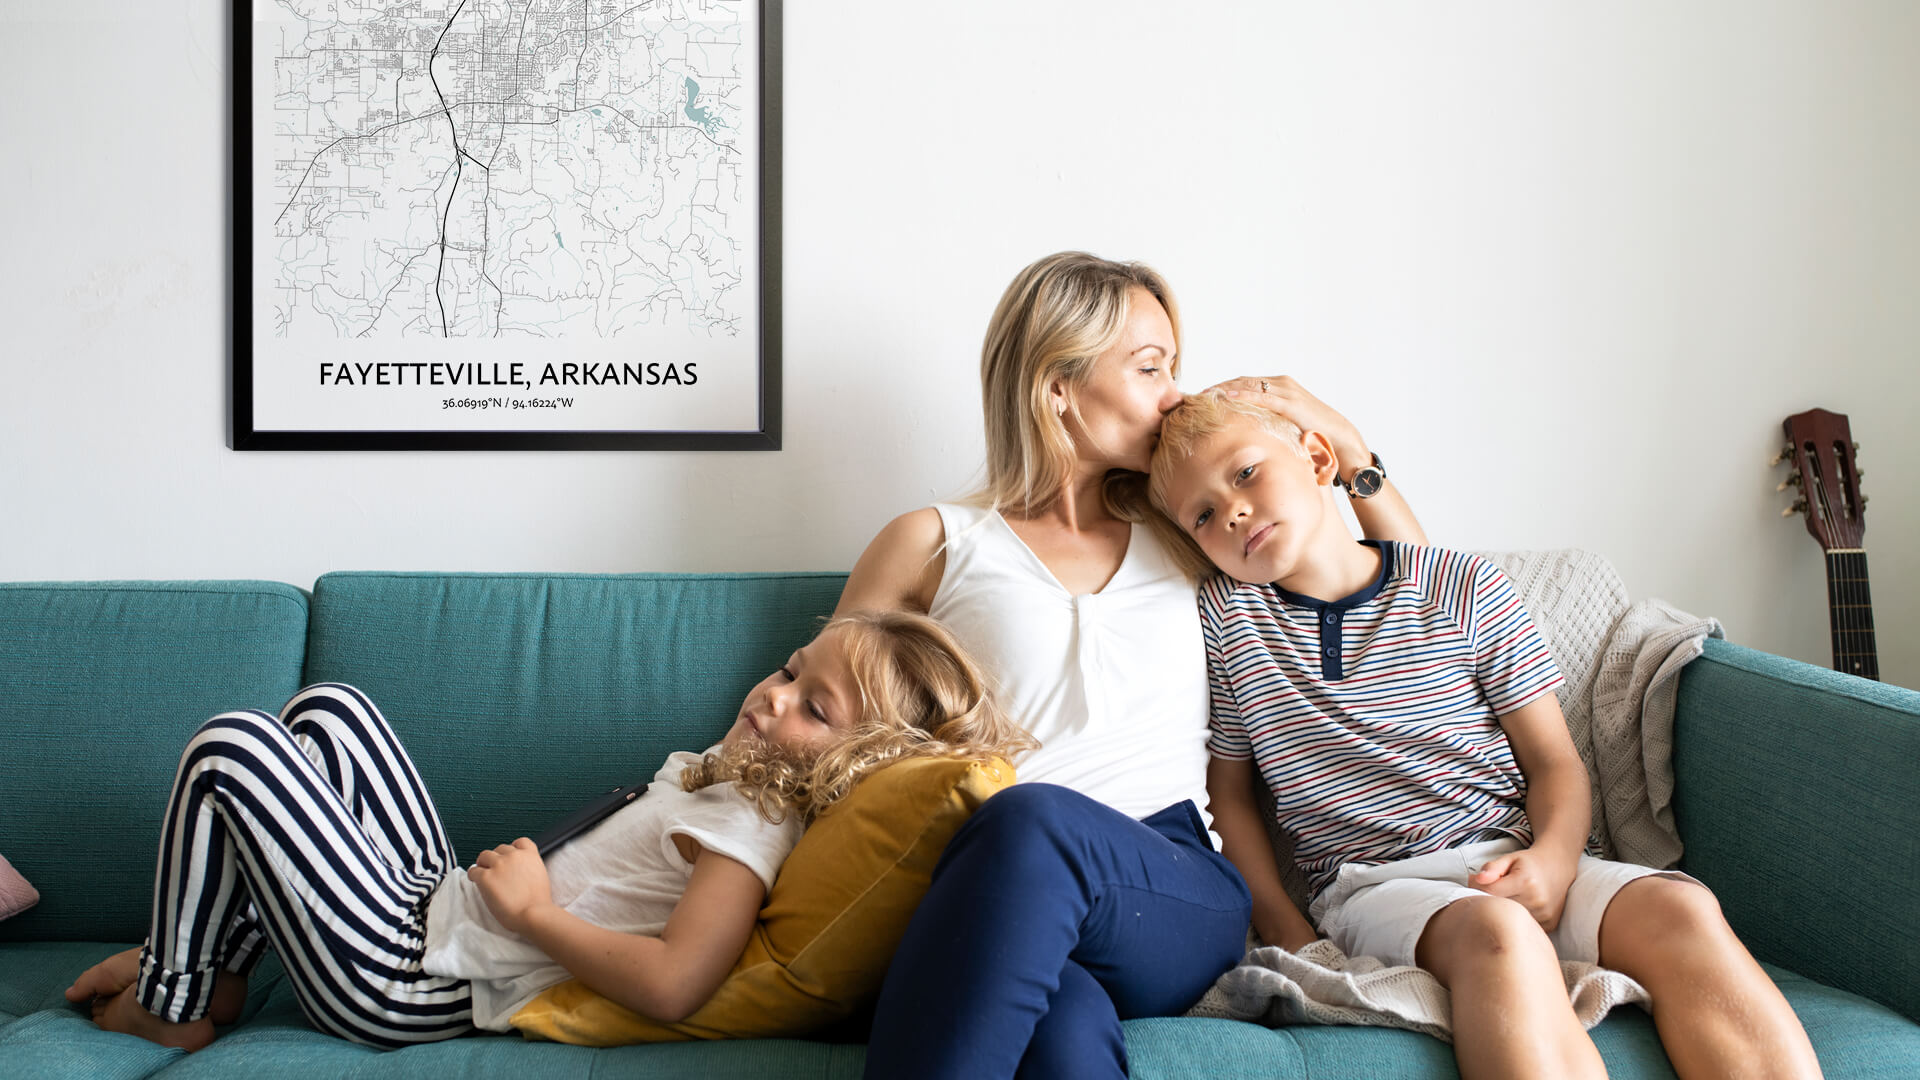 Fayetteville map poster